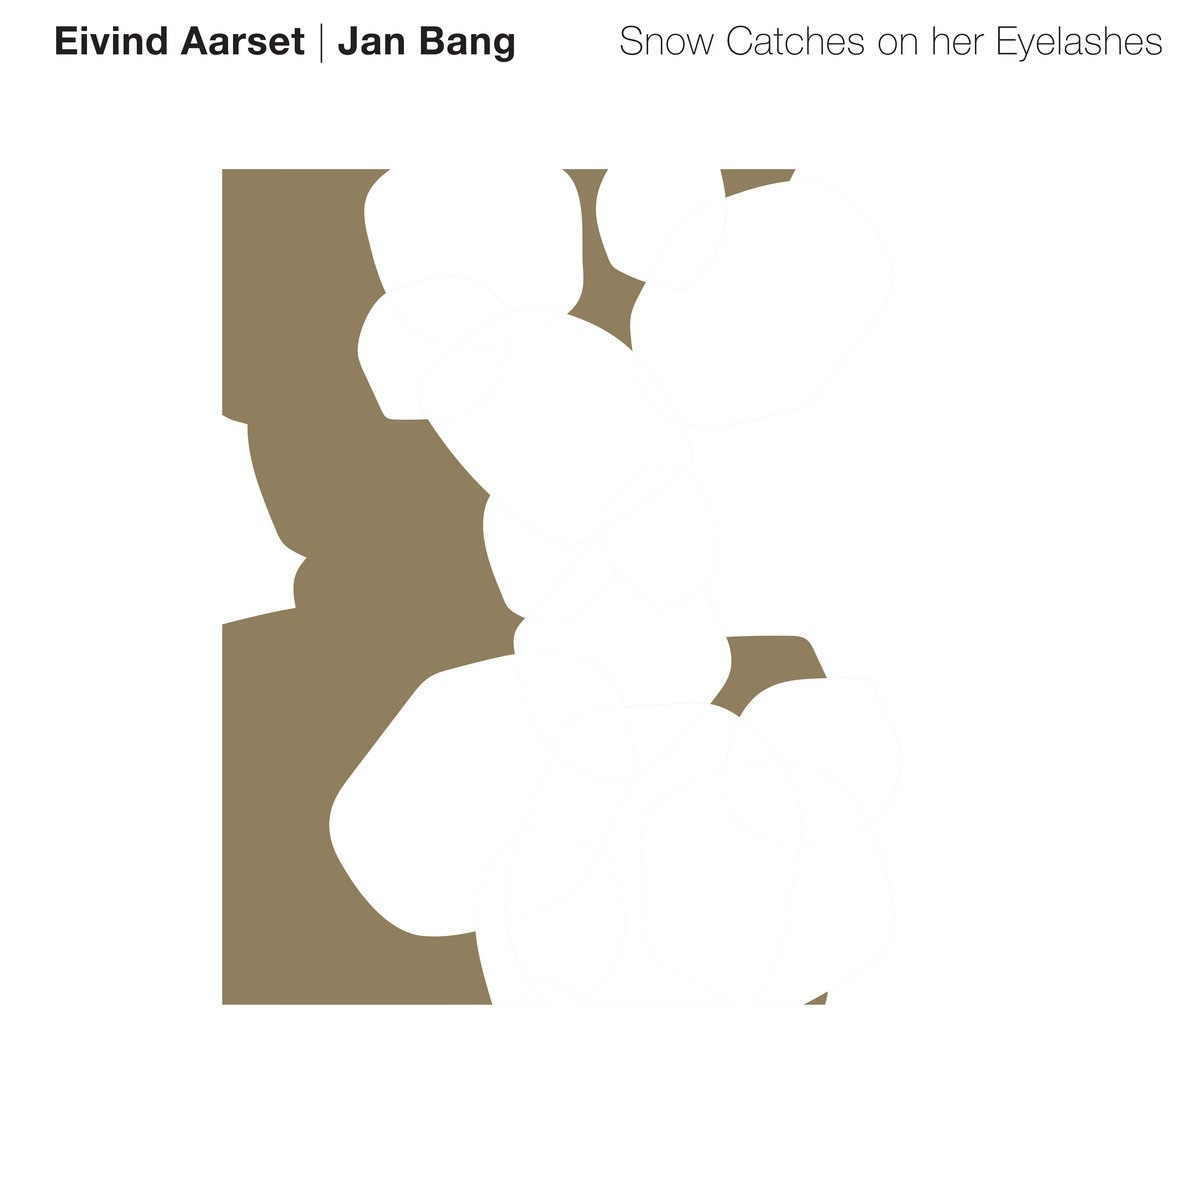 Review of Eivind Aarset/Jan Bang: Snow Catches on her Eyelashes